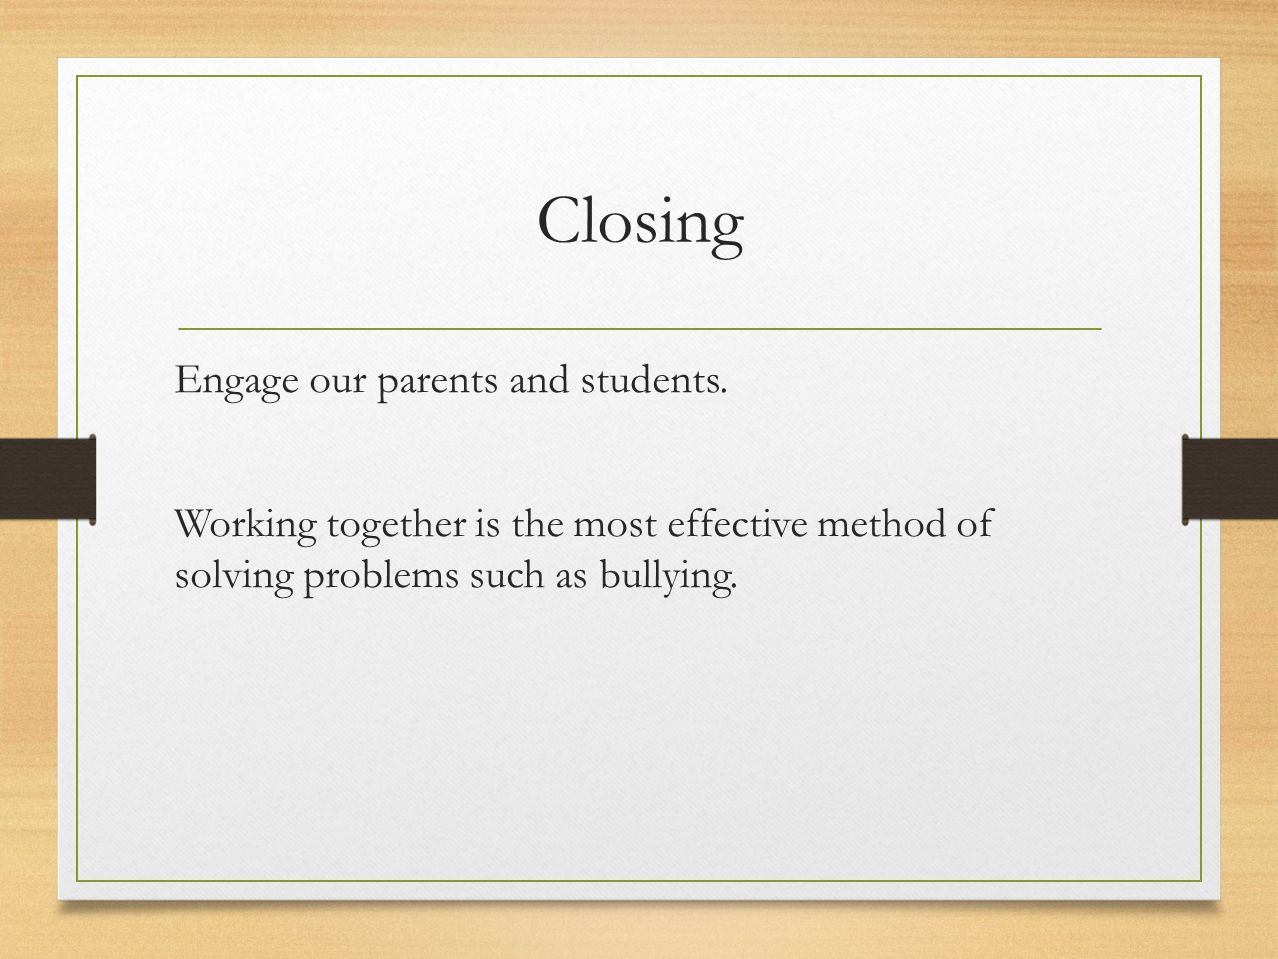 Closing Engage our parents and students. Working together is the most effective method of solving problems such as bullying.